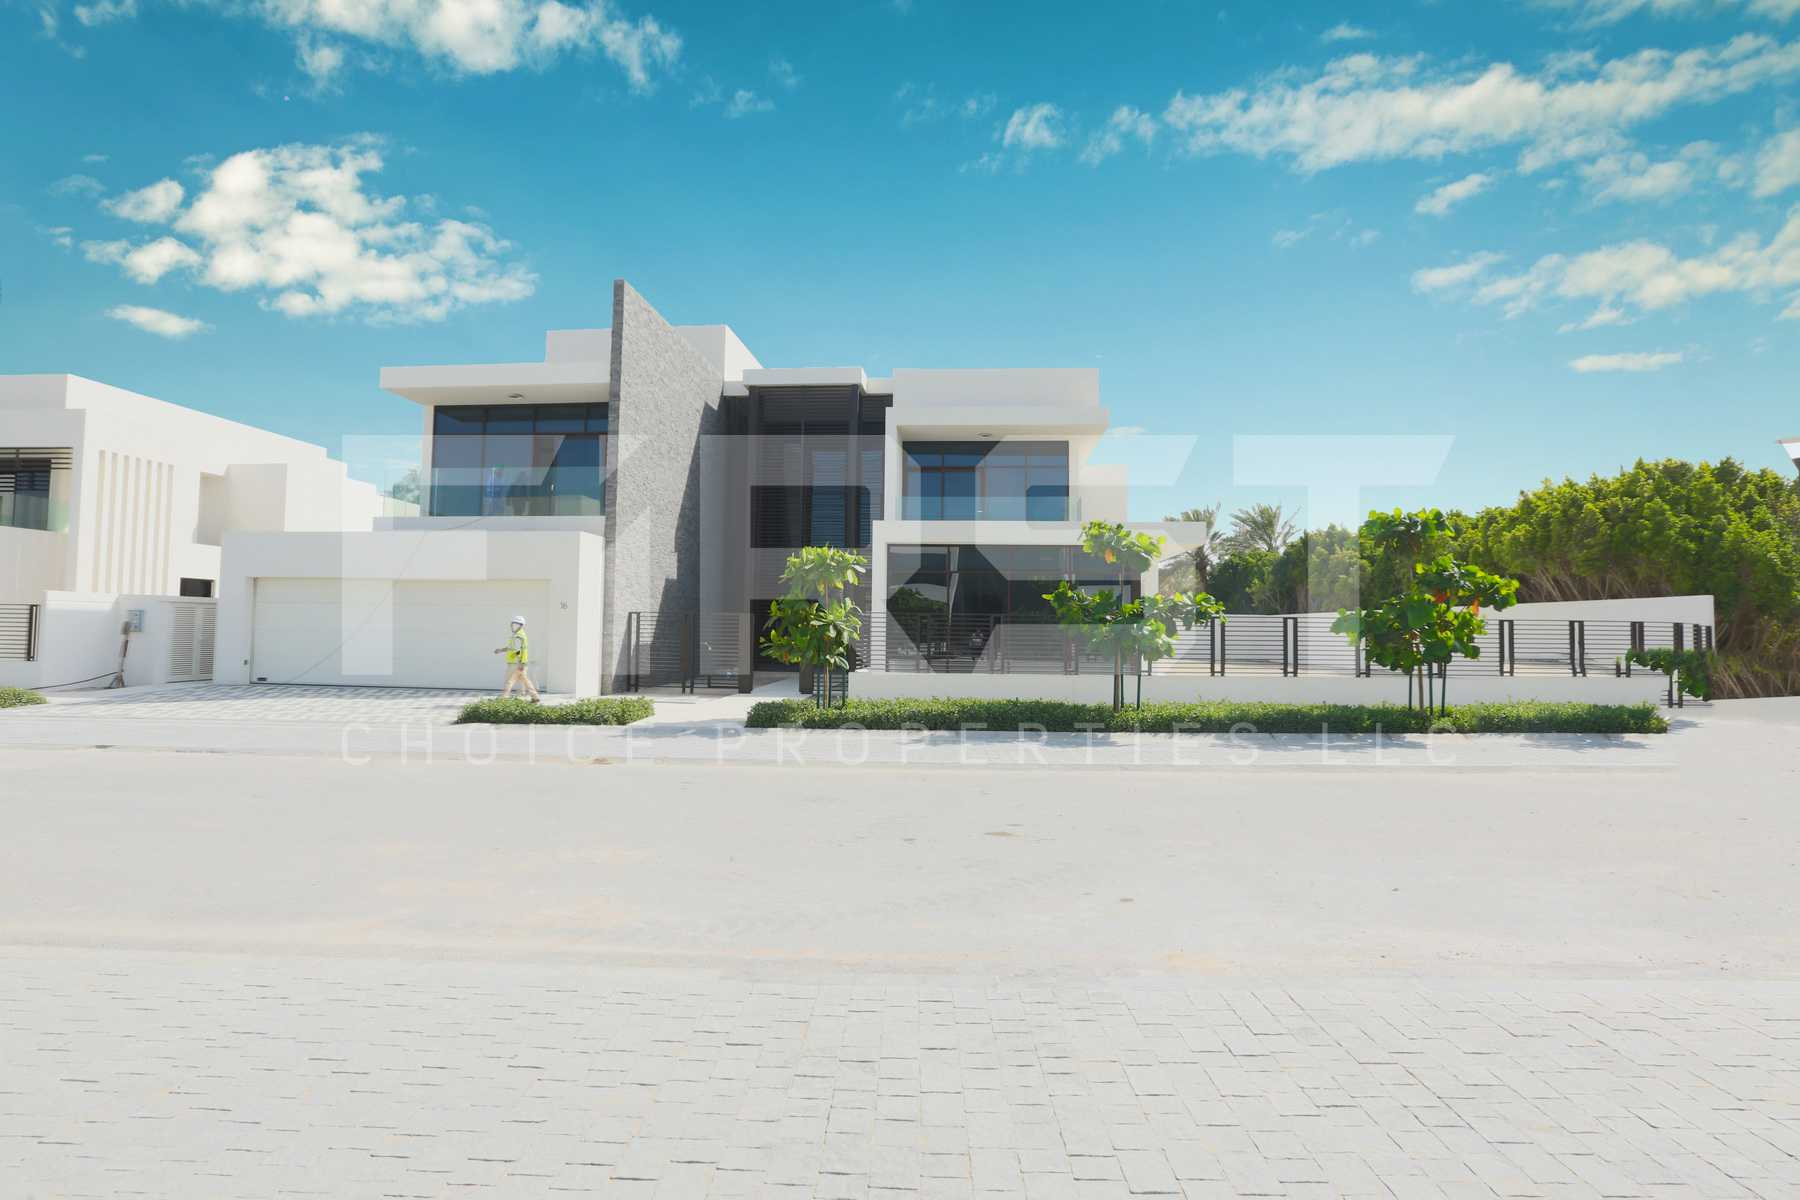 External Photo of 4 Bedroom Villa in Jawaher Saadiyat Saadiyat Island Abu Dhabi UAE (4).jpg